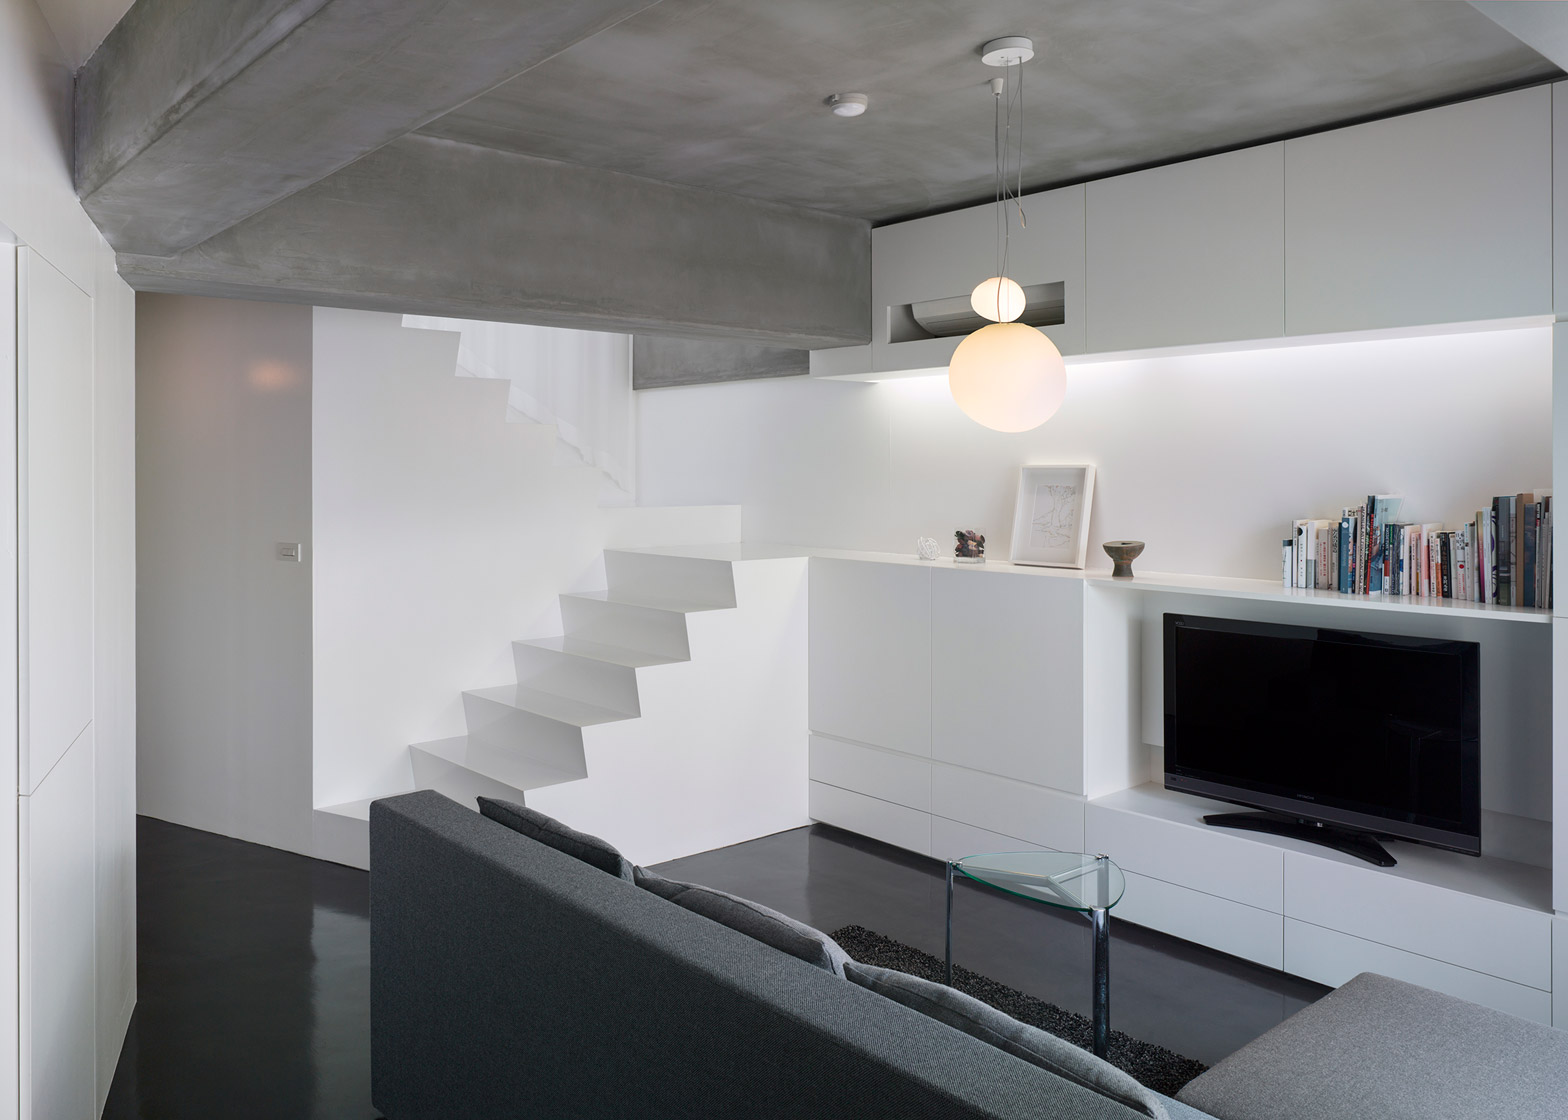 UME Architects transforms Kyoto apartment into flat and atelier